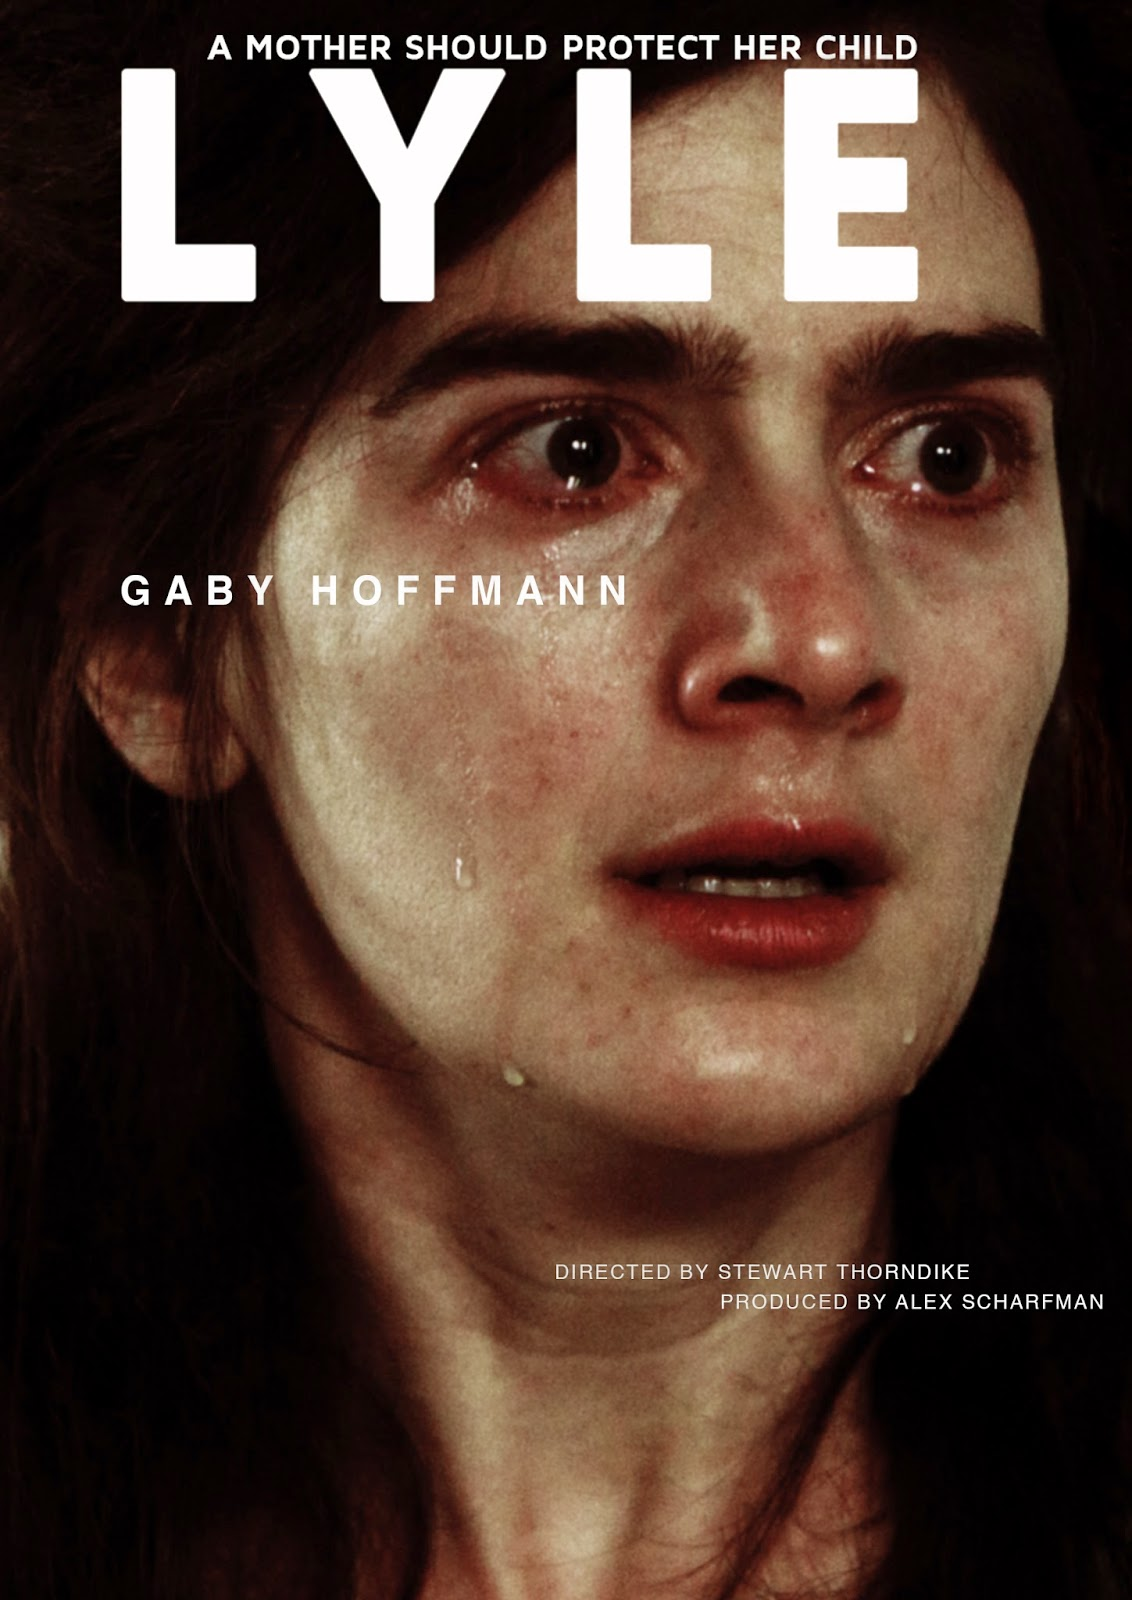 lyle-movie-poster-gaby-hoffman.jpg